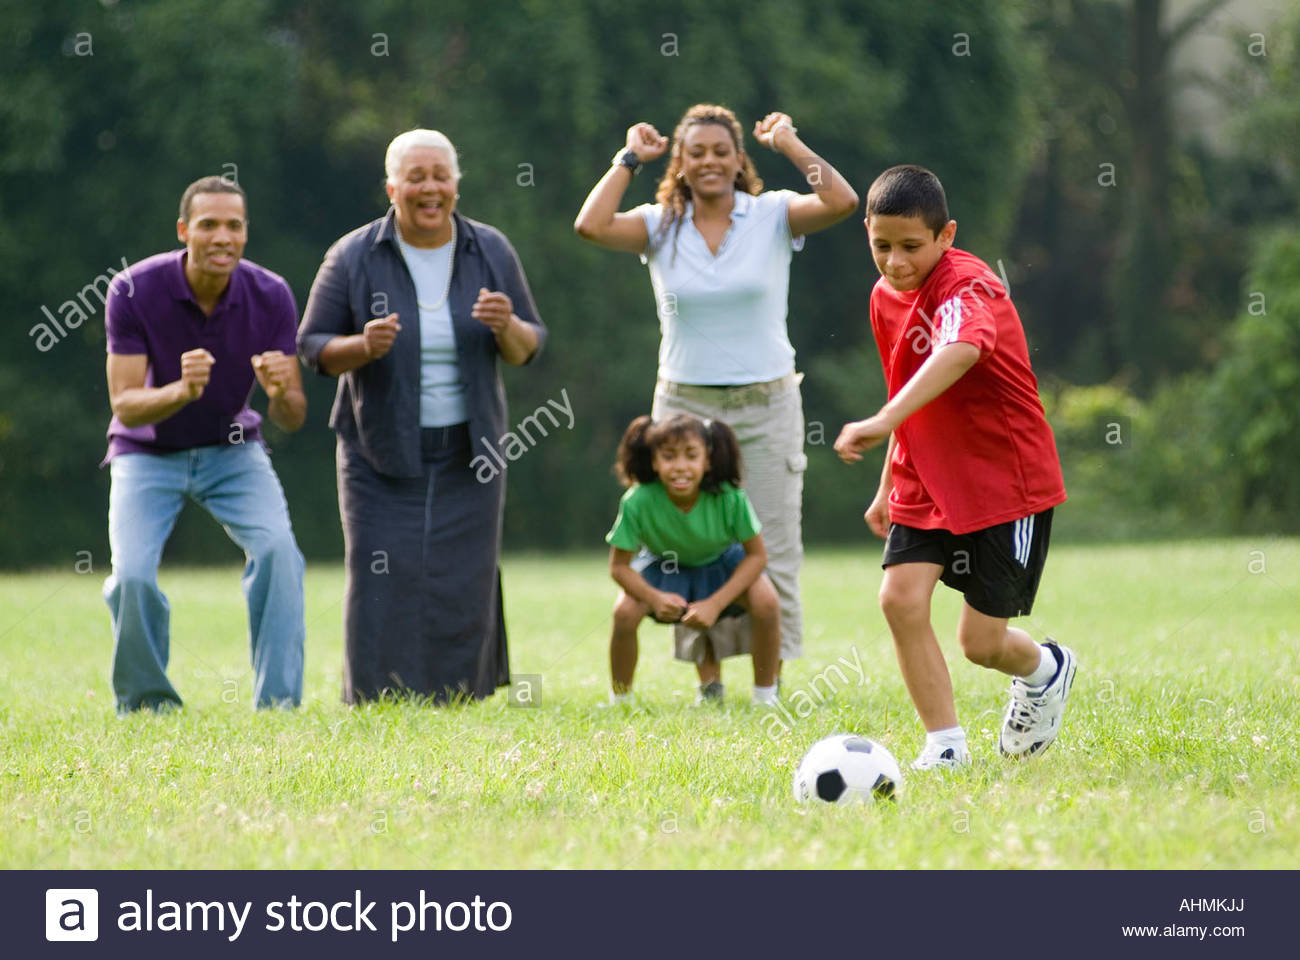 Young boy kicking soccer ball as family watches - Stock Image